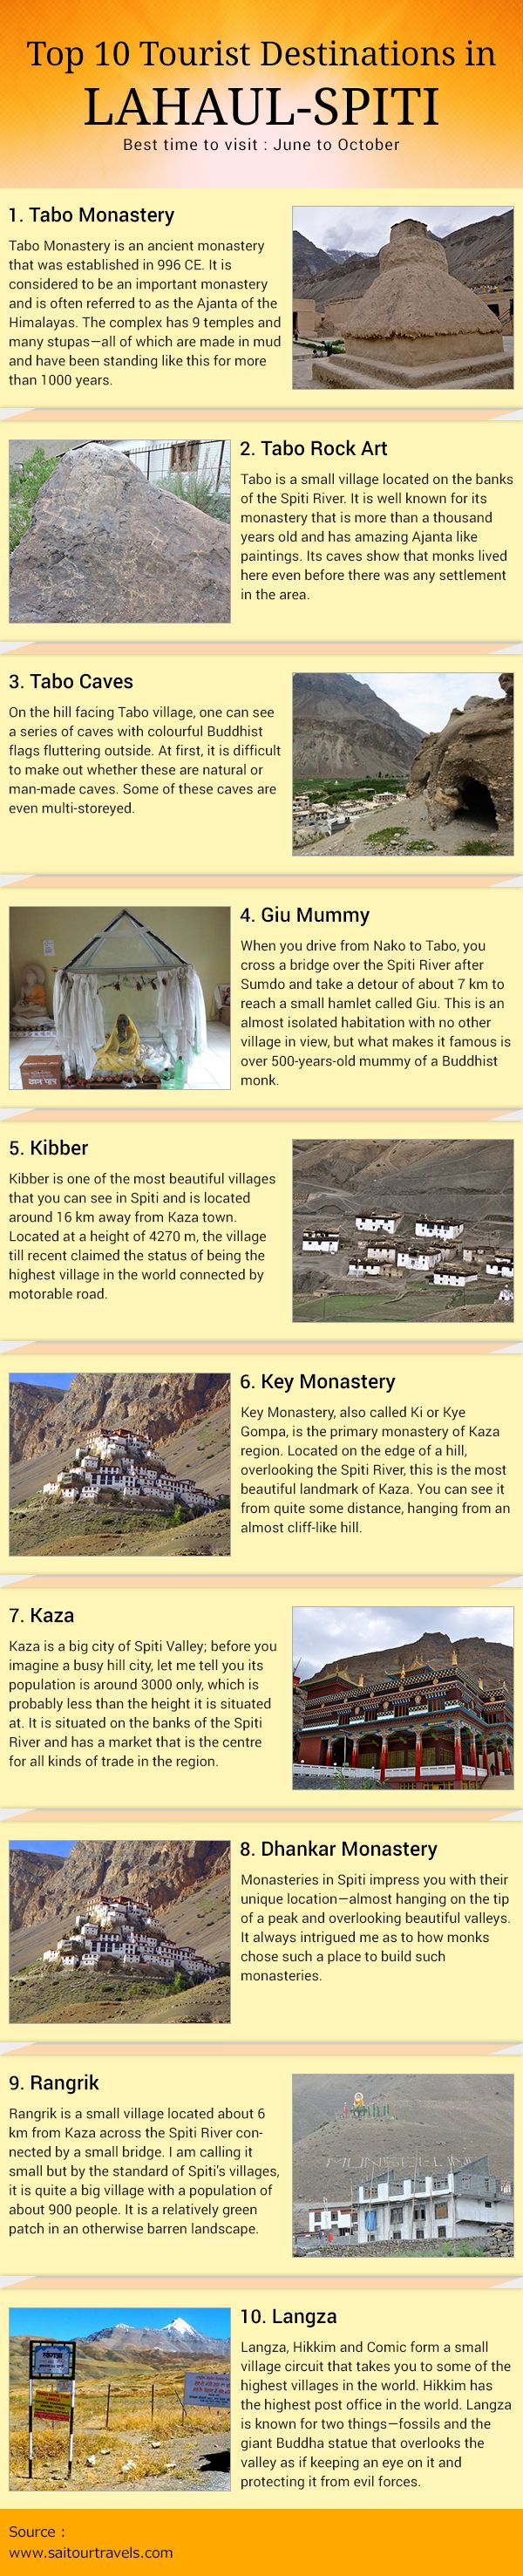 Top 10 Tourist Places To Visit in Lahaul Spiti ‪#‎Lahaul‬ ‪#‎Spiti‬ ‪#‎Himachalpradesh‬ ‪#‎India‬